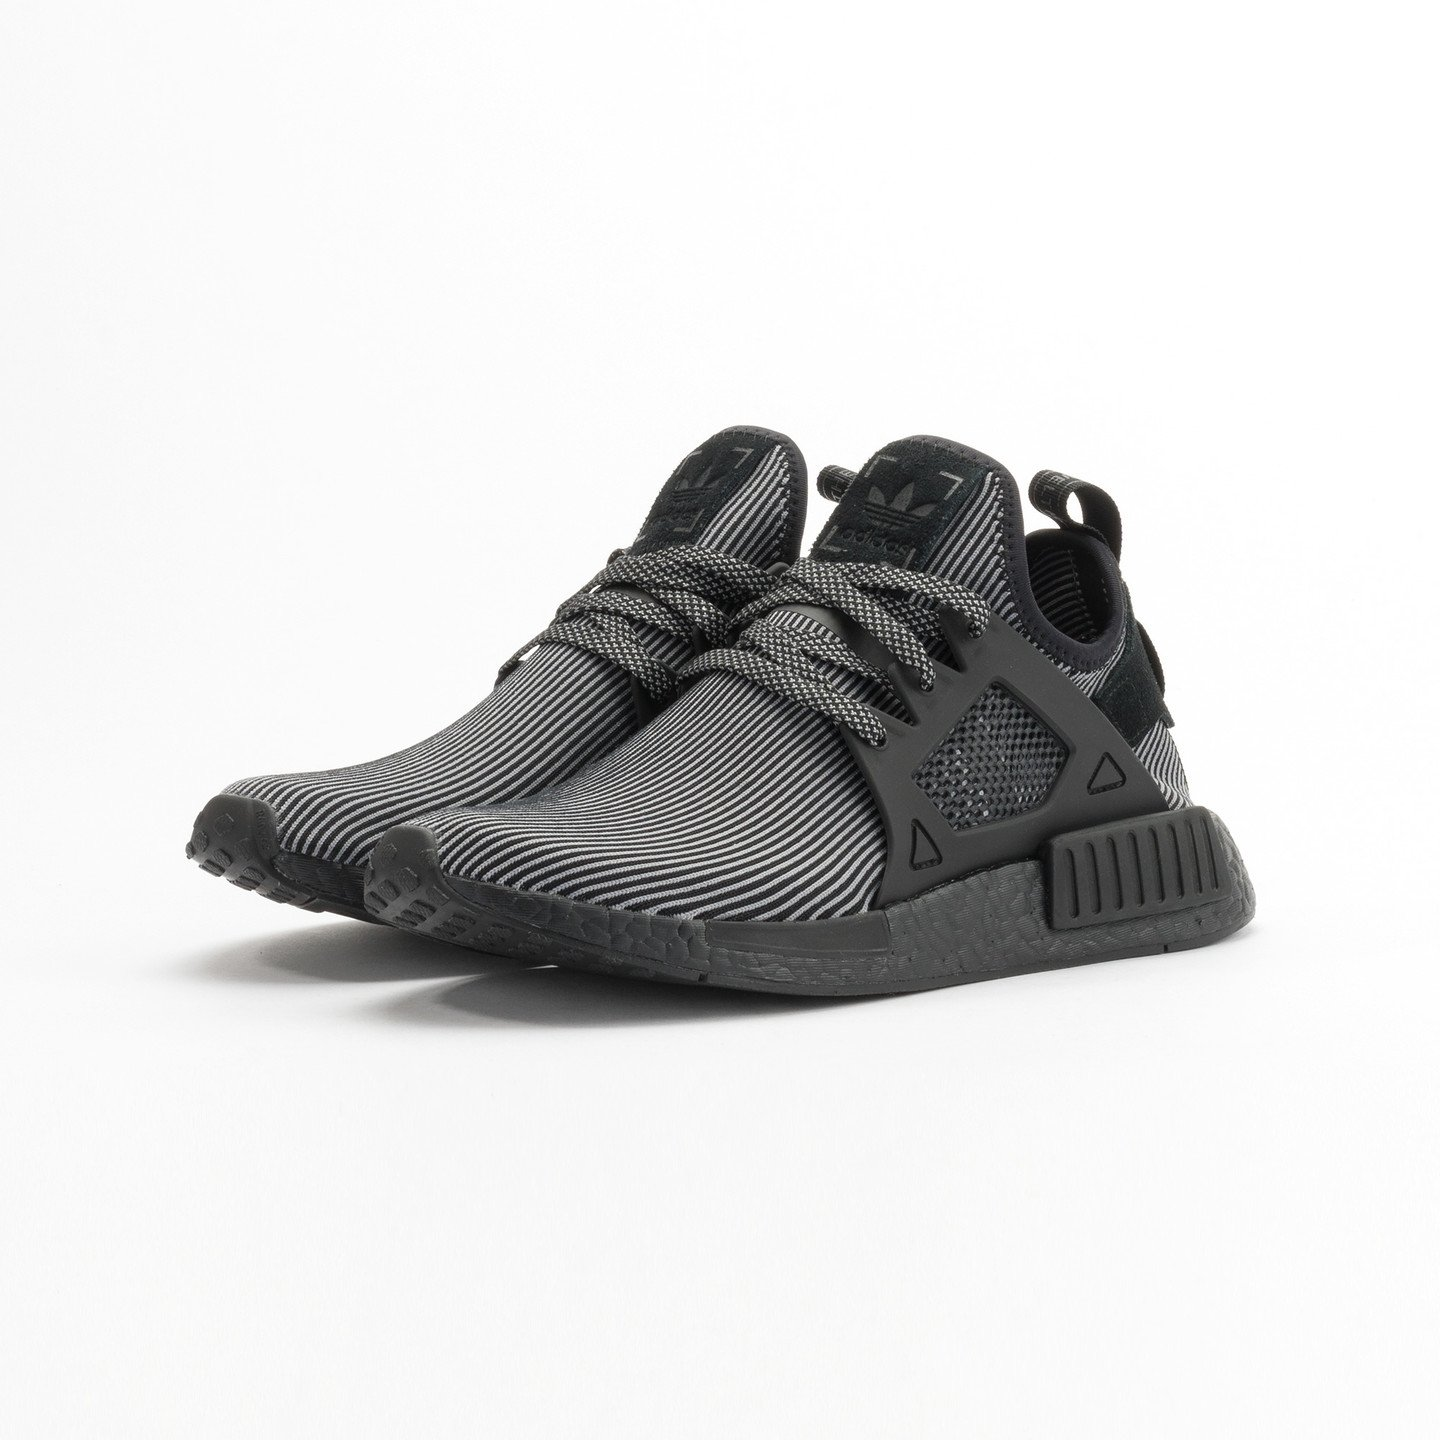 Adidas NMD XR1 Primeknit Core Black / Core Black / Running White S32211-39.33